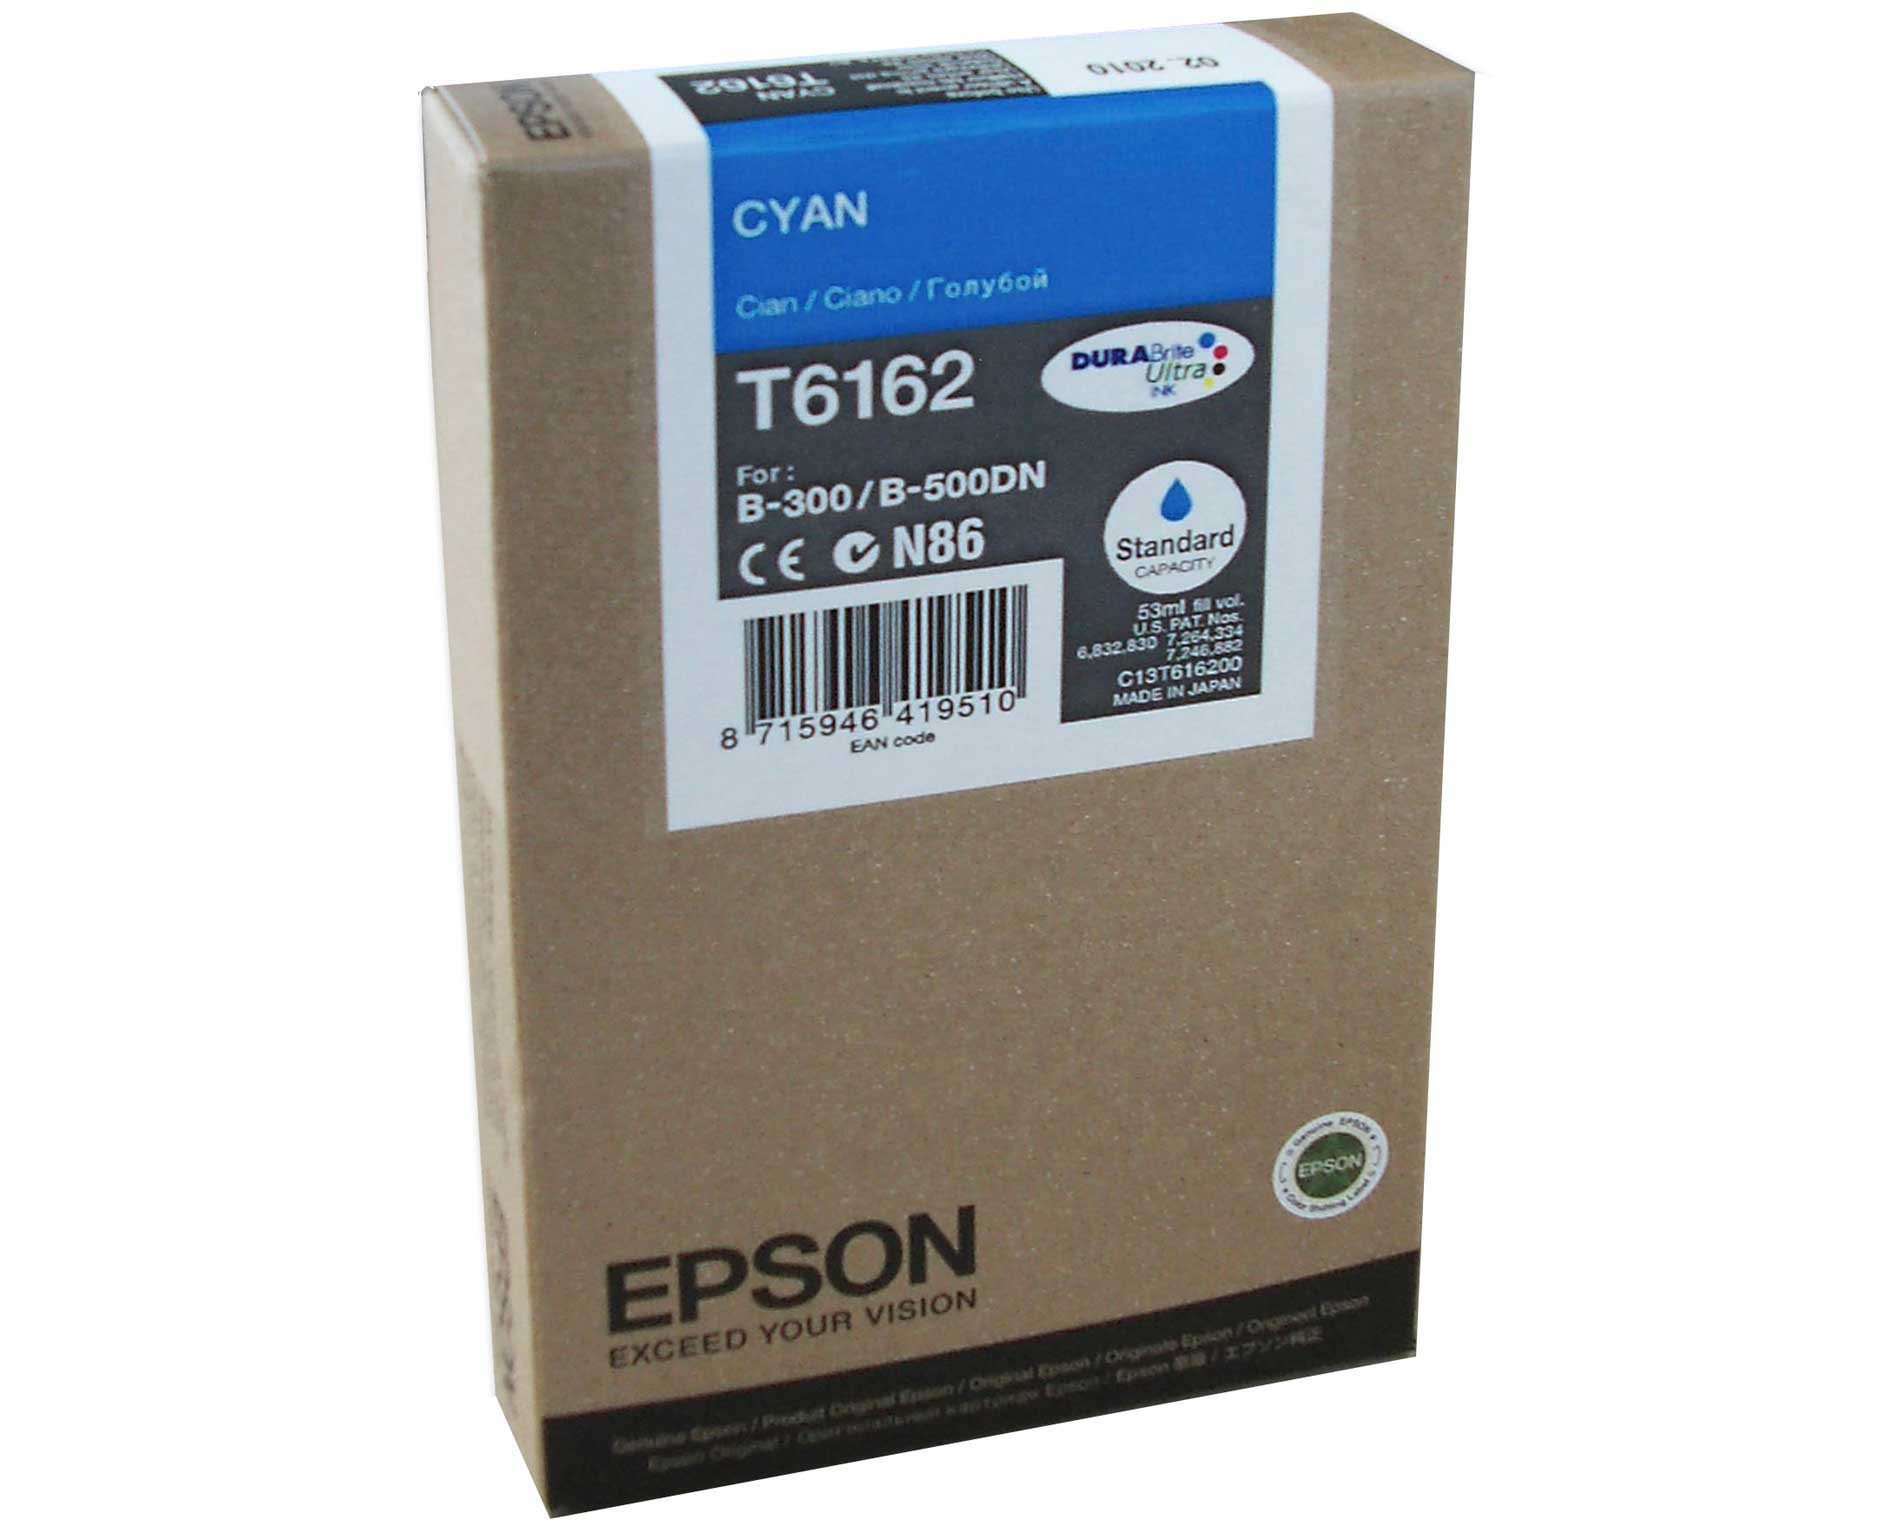 Cyan Epson T6162 Ink Cartridge (C13T616200) Printer Cartridge